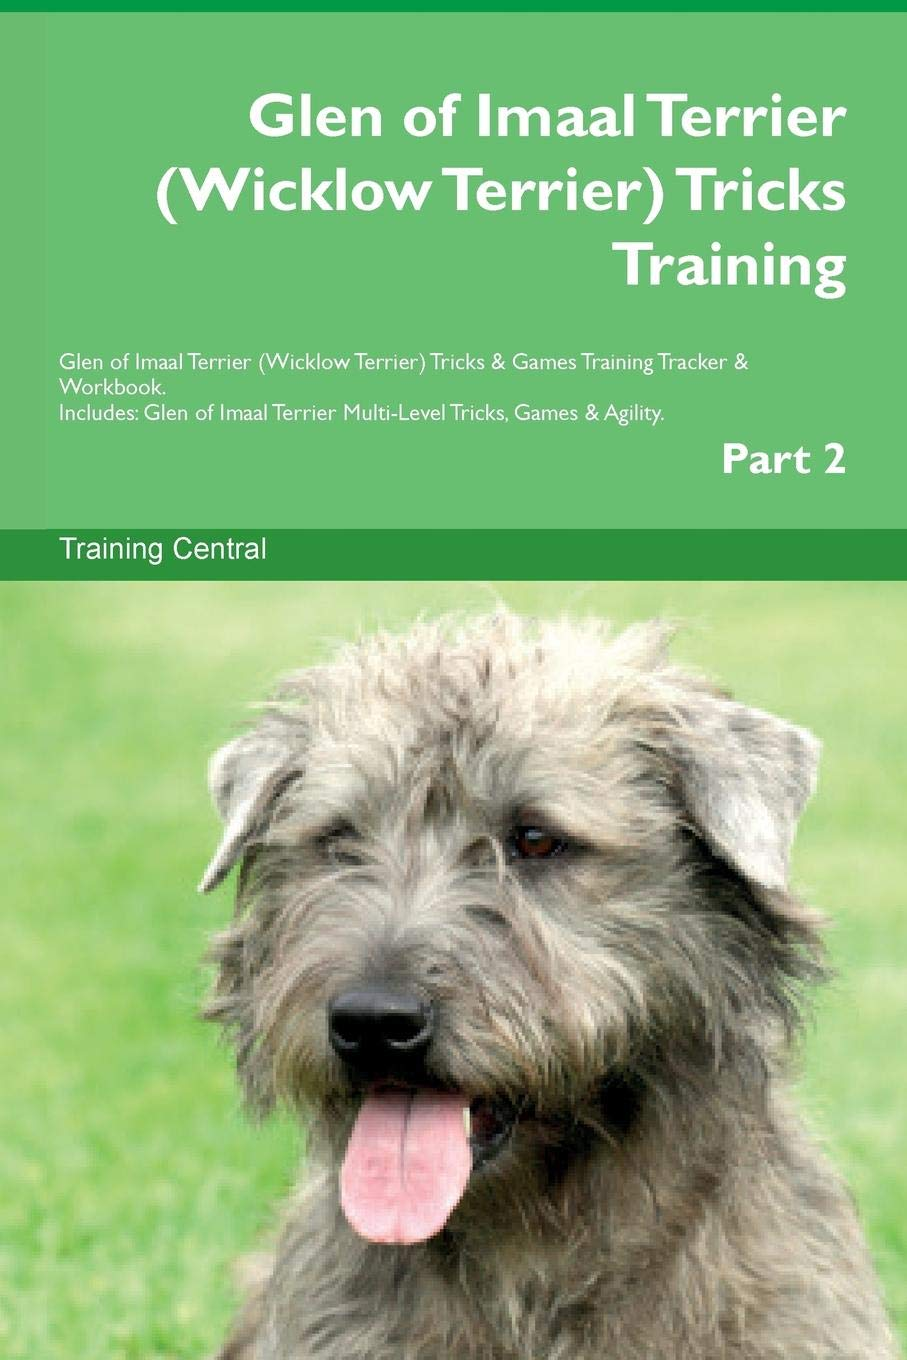 Glen of Imaal Terrier (Wicklow Terrier) Tricks Training Glen of Imaal Terrier (Wicklow Terrier) Tricks & Games Training Tracker & Workbook.  Includes: ... Multi-Level Tricks, Games & Agility. Part 2 ebook